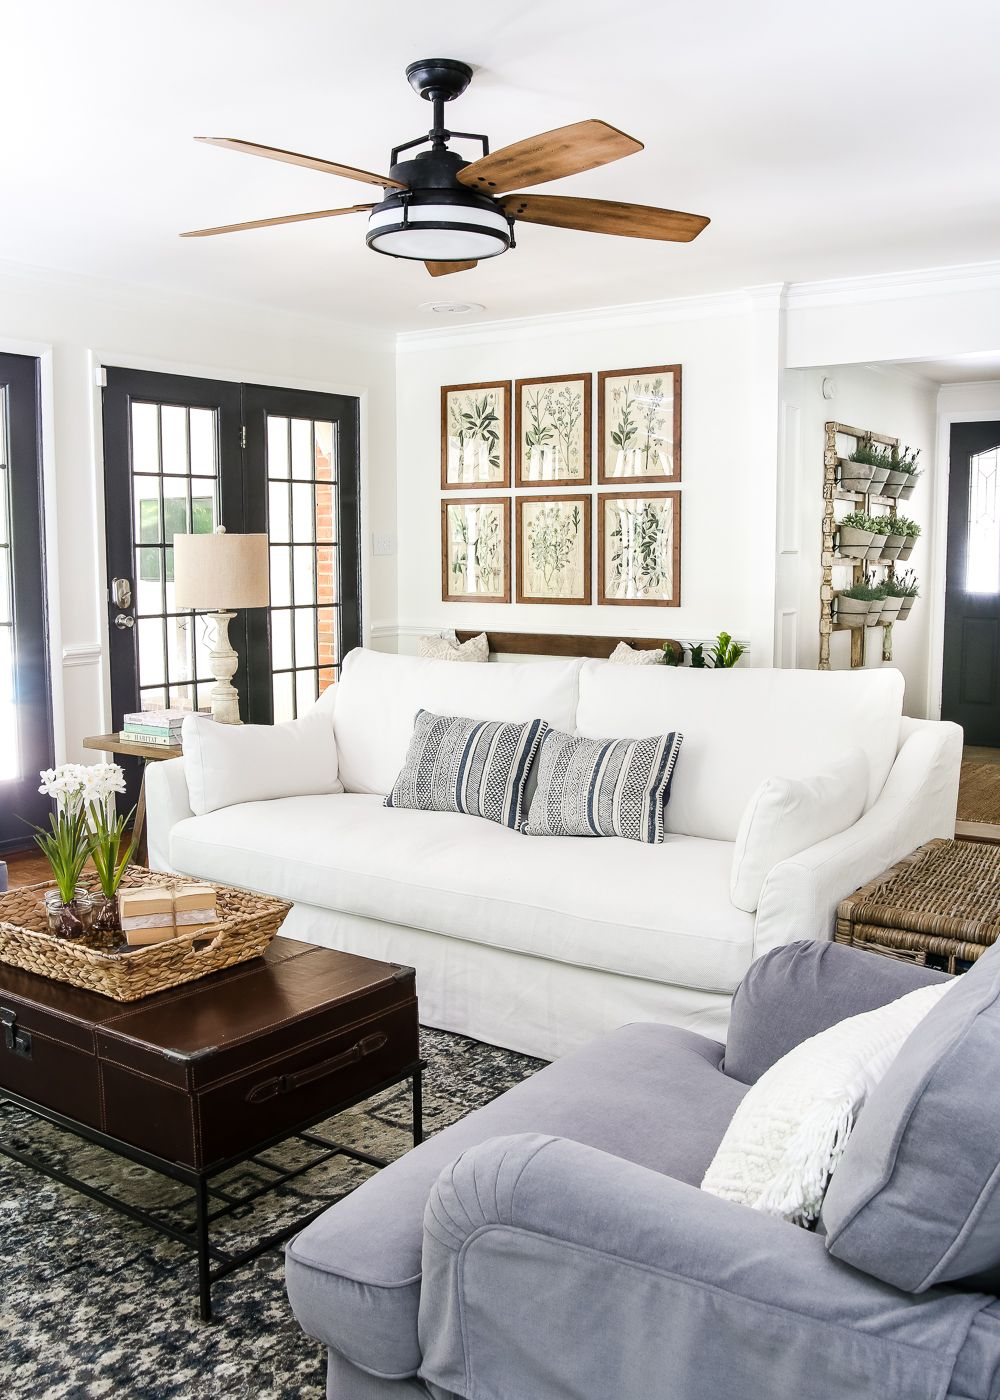 farmhouse decor farmhouse style living room decor split modern apartment decorating ideas Modern French Farmhouse Summer Home Tour | blesserhouse.com - A summer home  tour with modern French farmhouse style using inexpensive decorating tricks  and ...